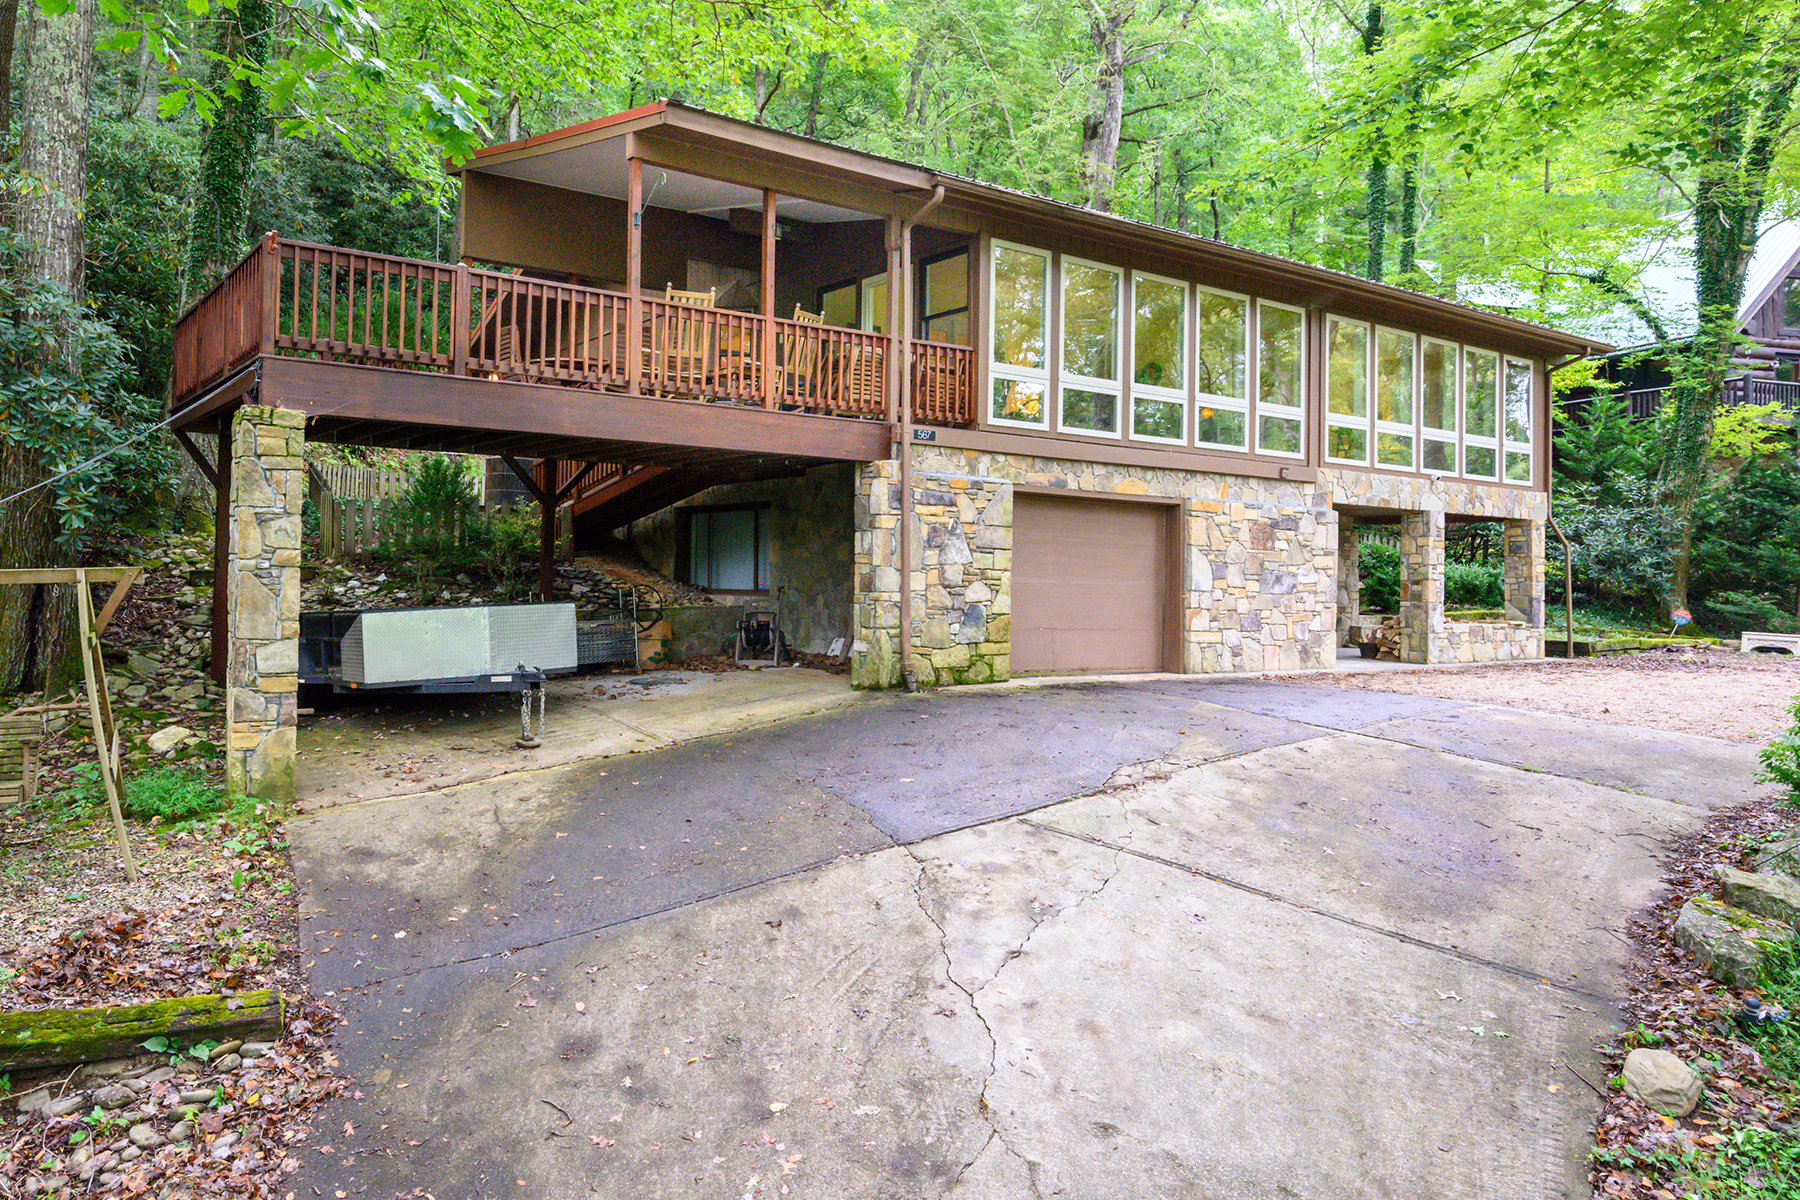 Single Family Homes for Sale at MOUNT MITCHELL LANDS 567 Toe River Rd Burnsville, North Carolina 28714 United States